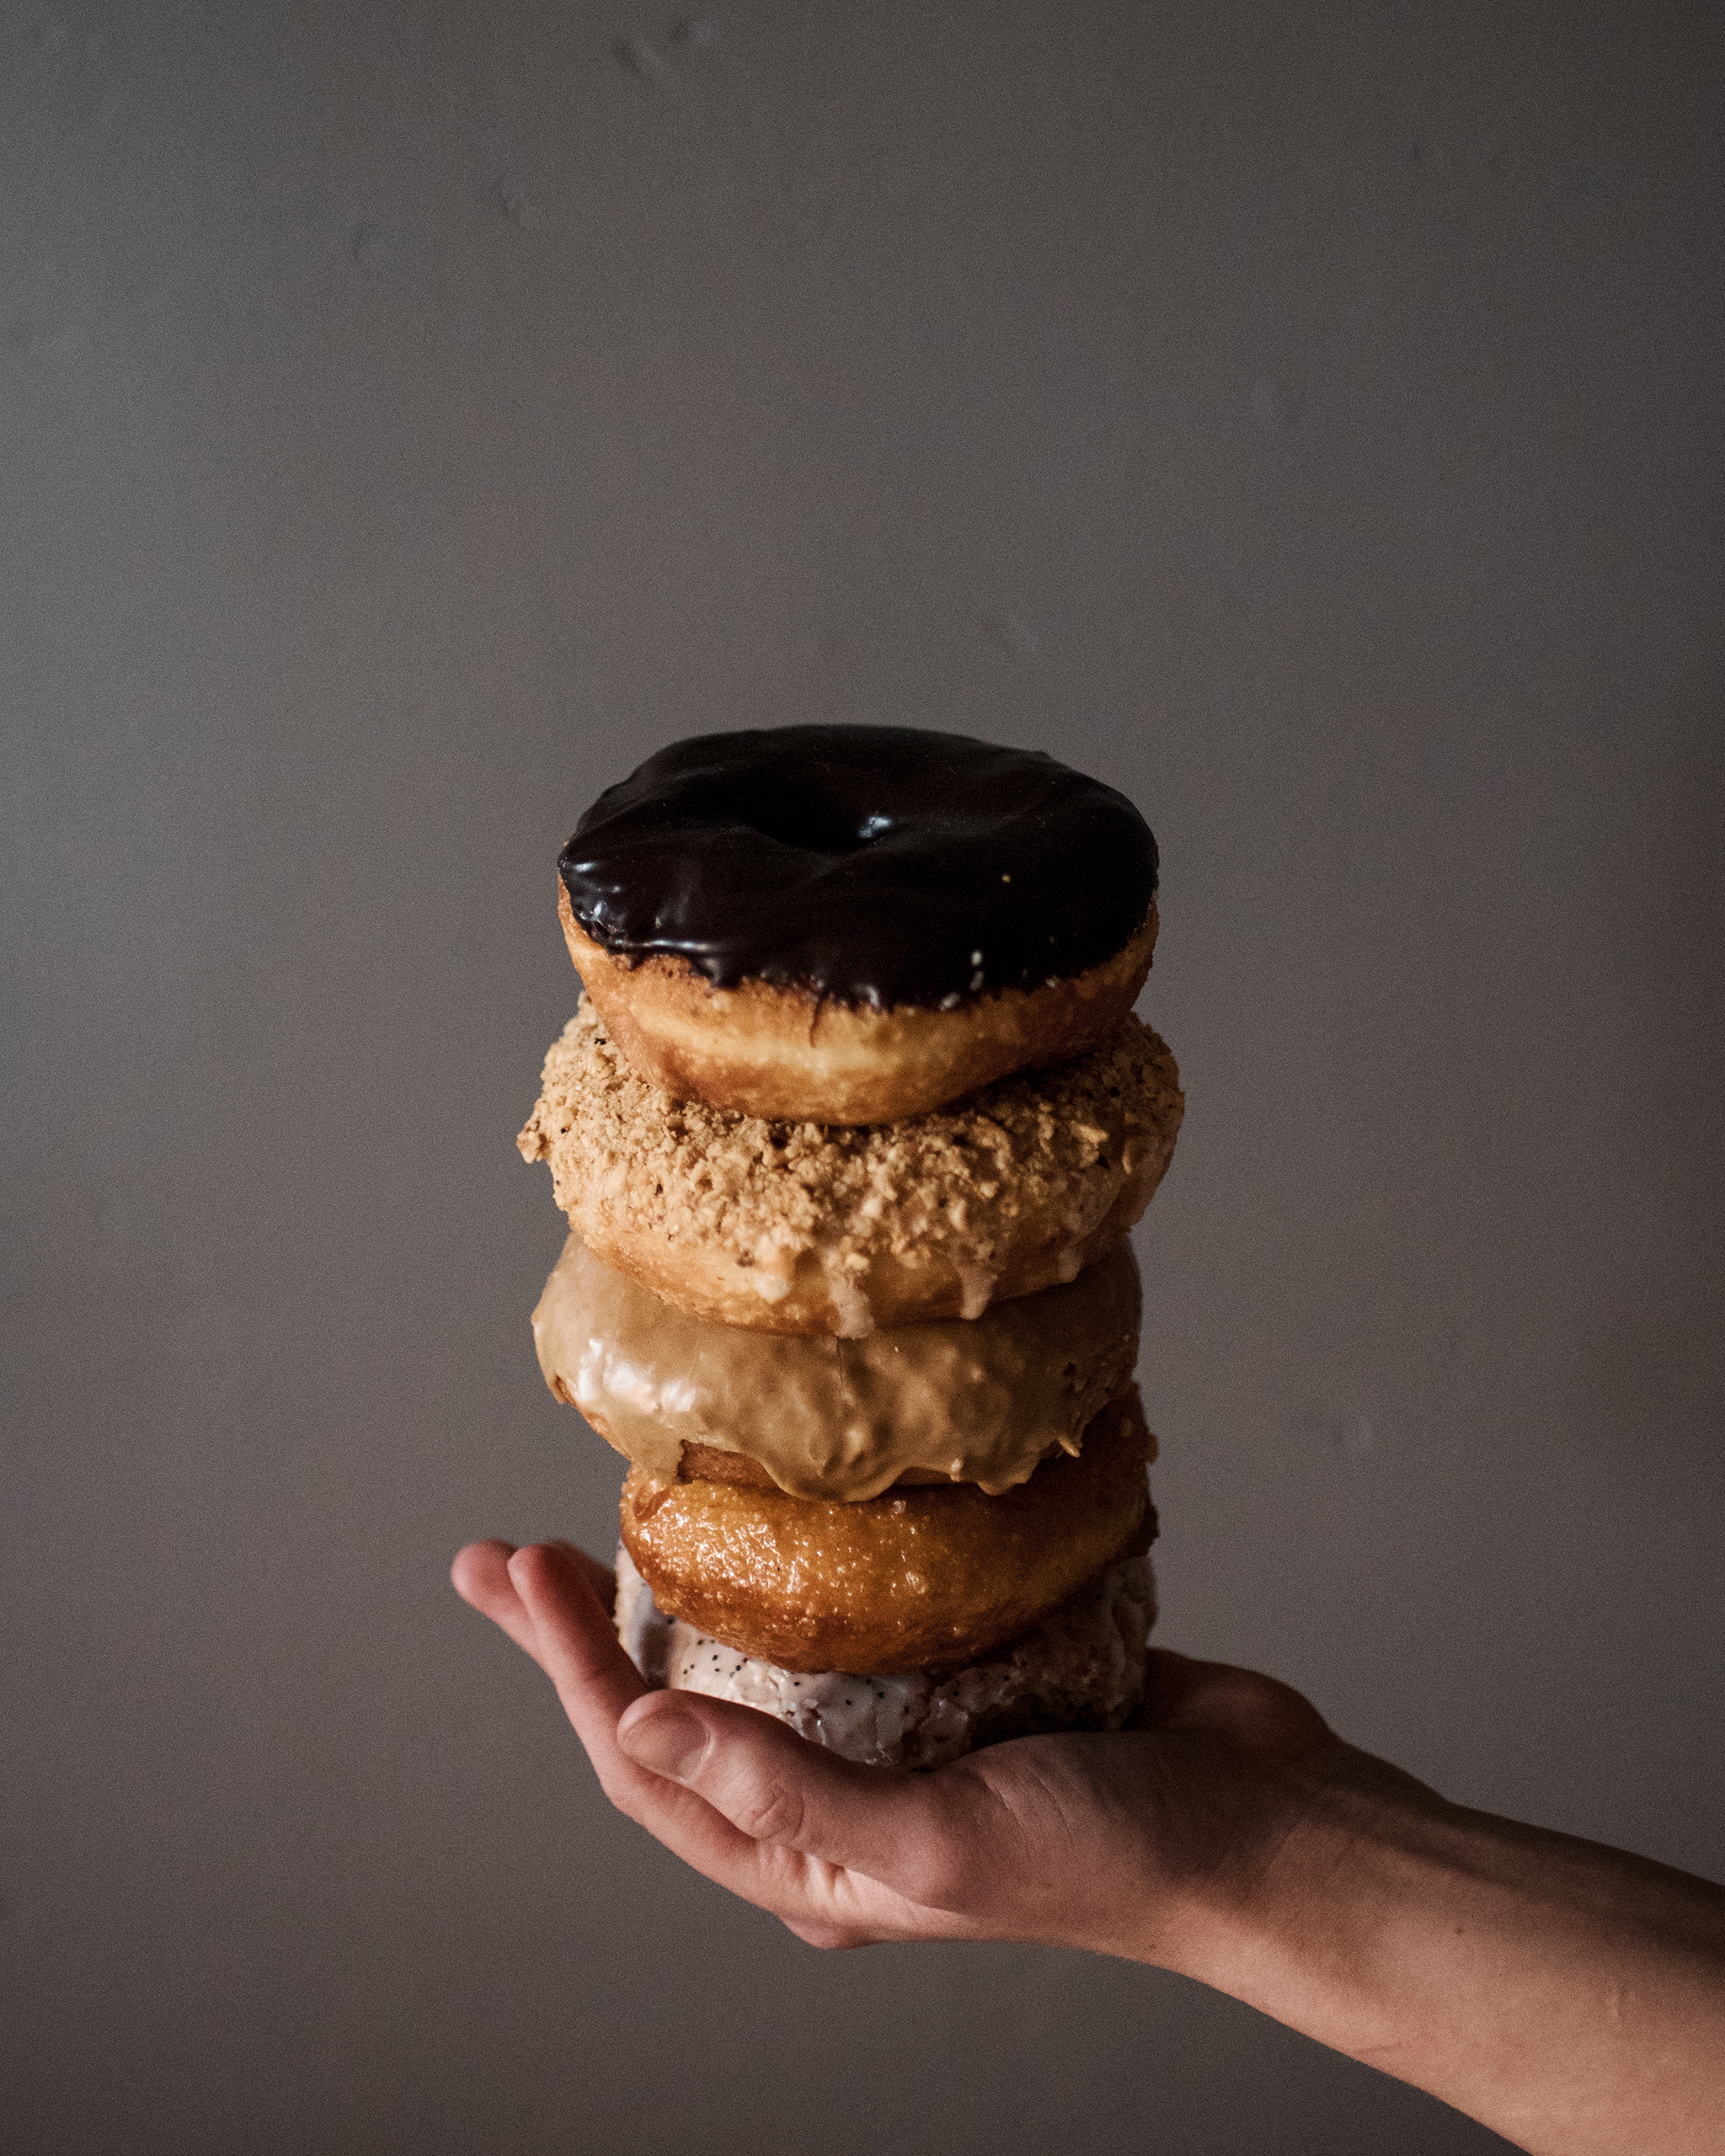 seattle-donut-photographer-blogger.jpg